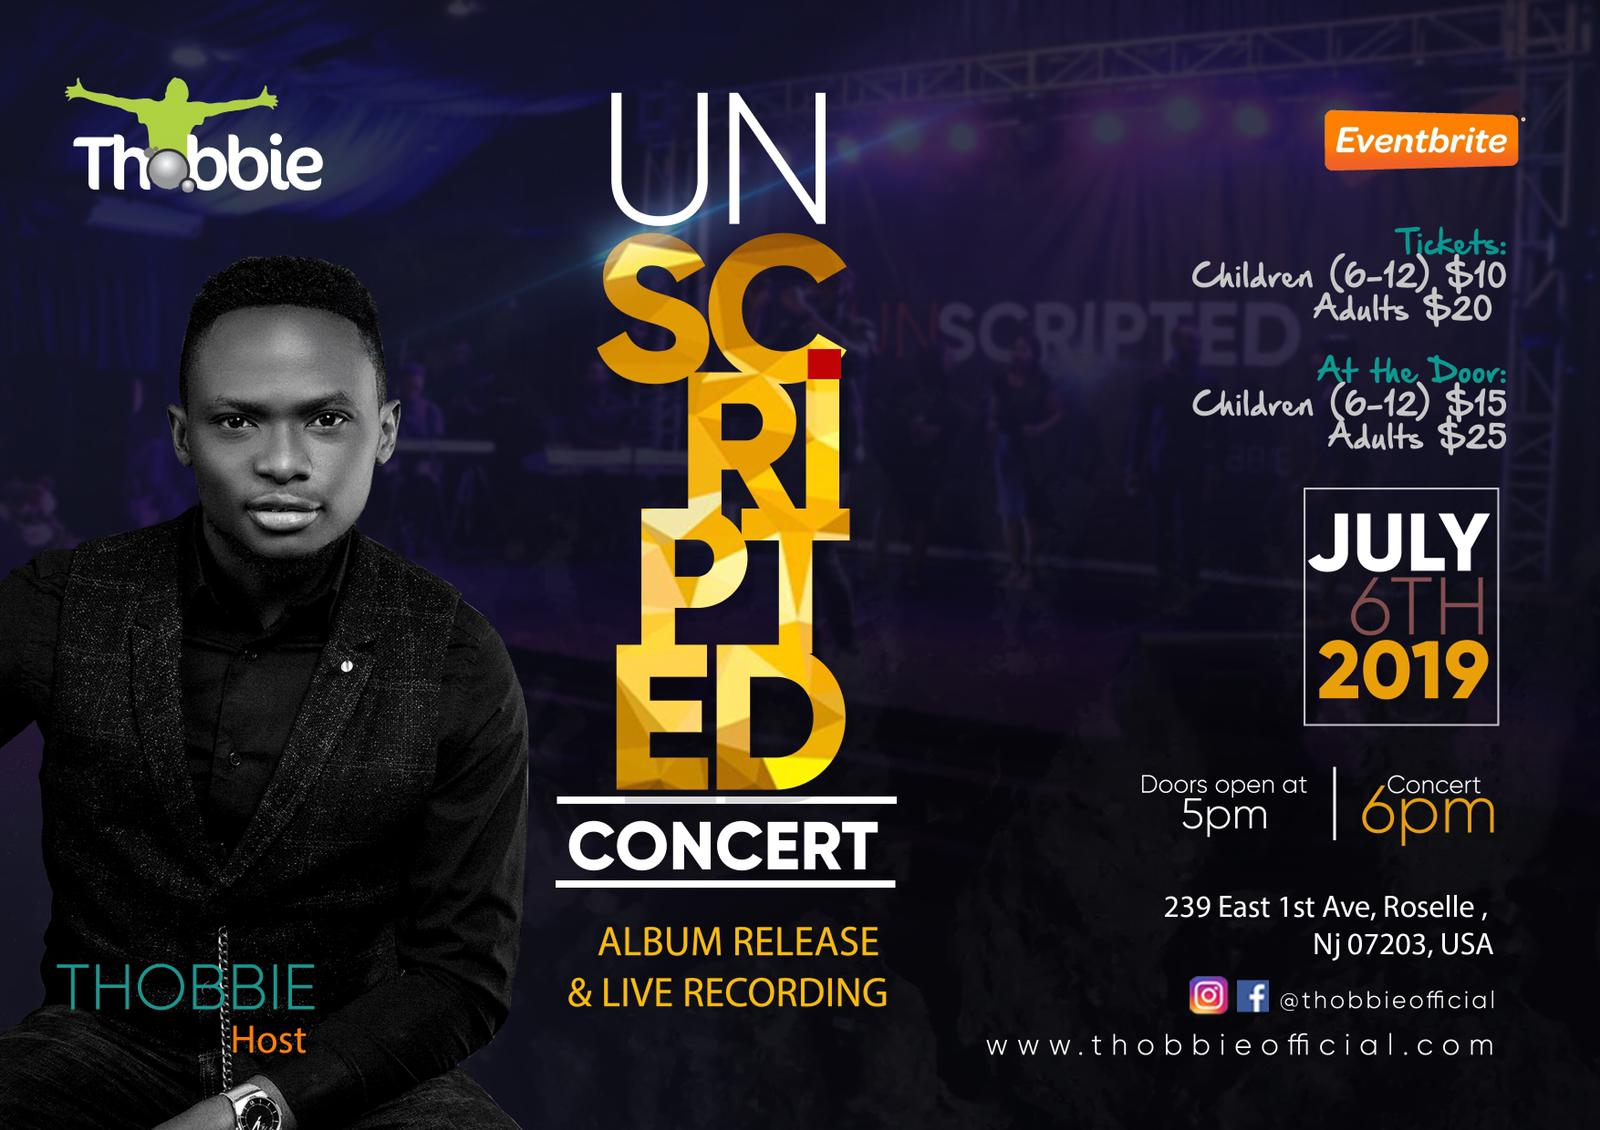 THOBBIE UNSCRIPTED 2019